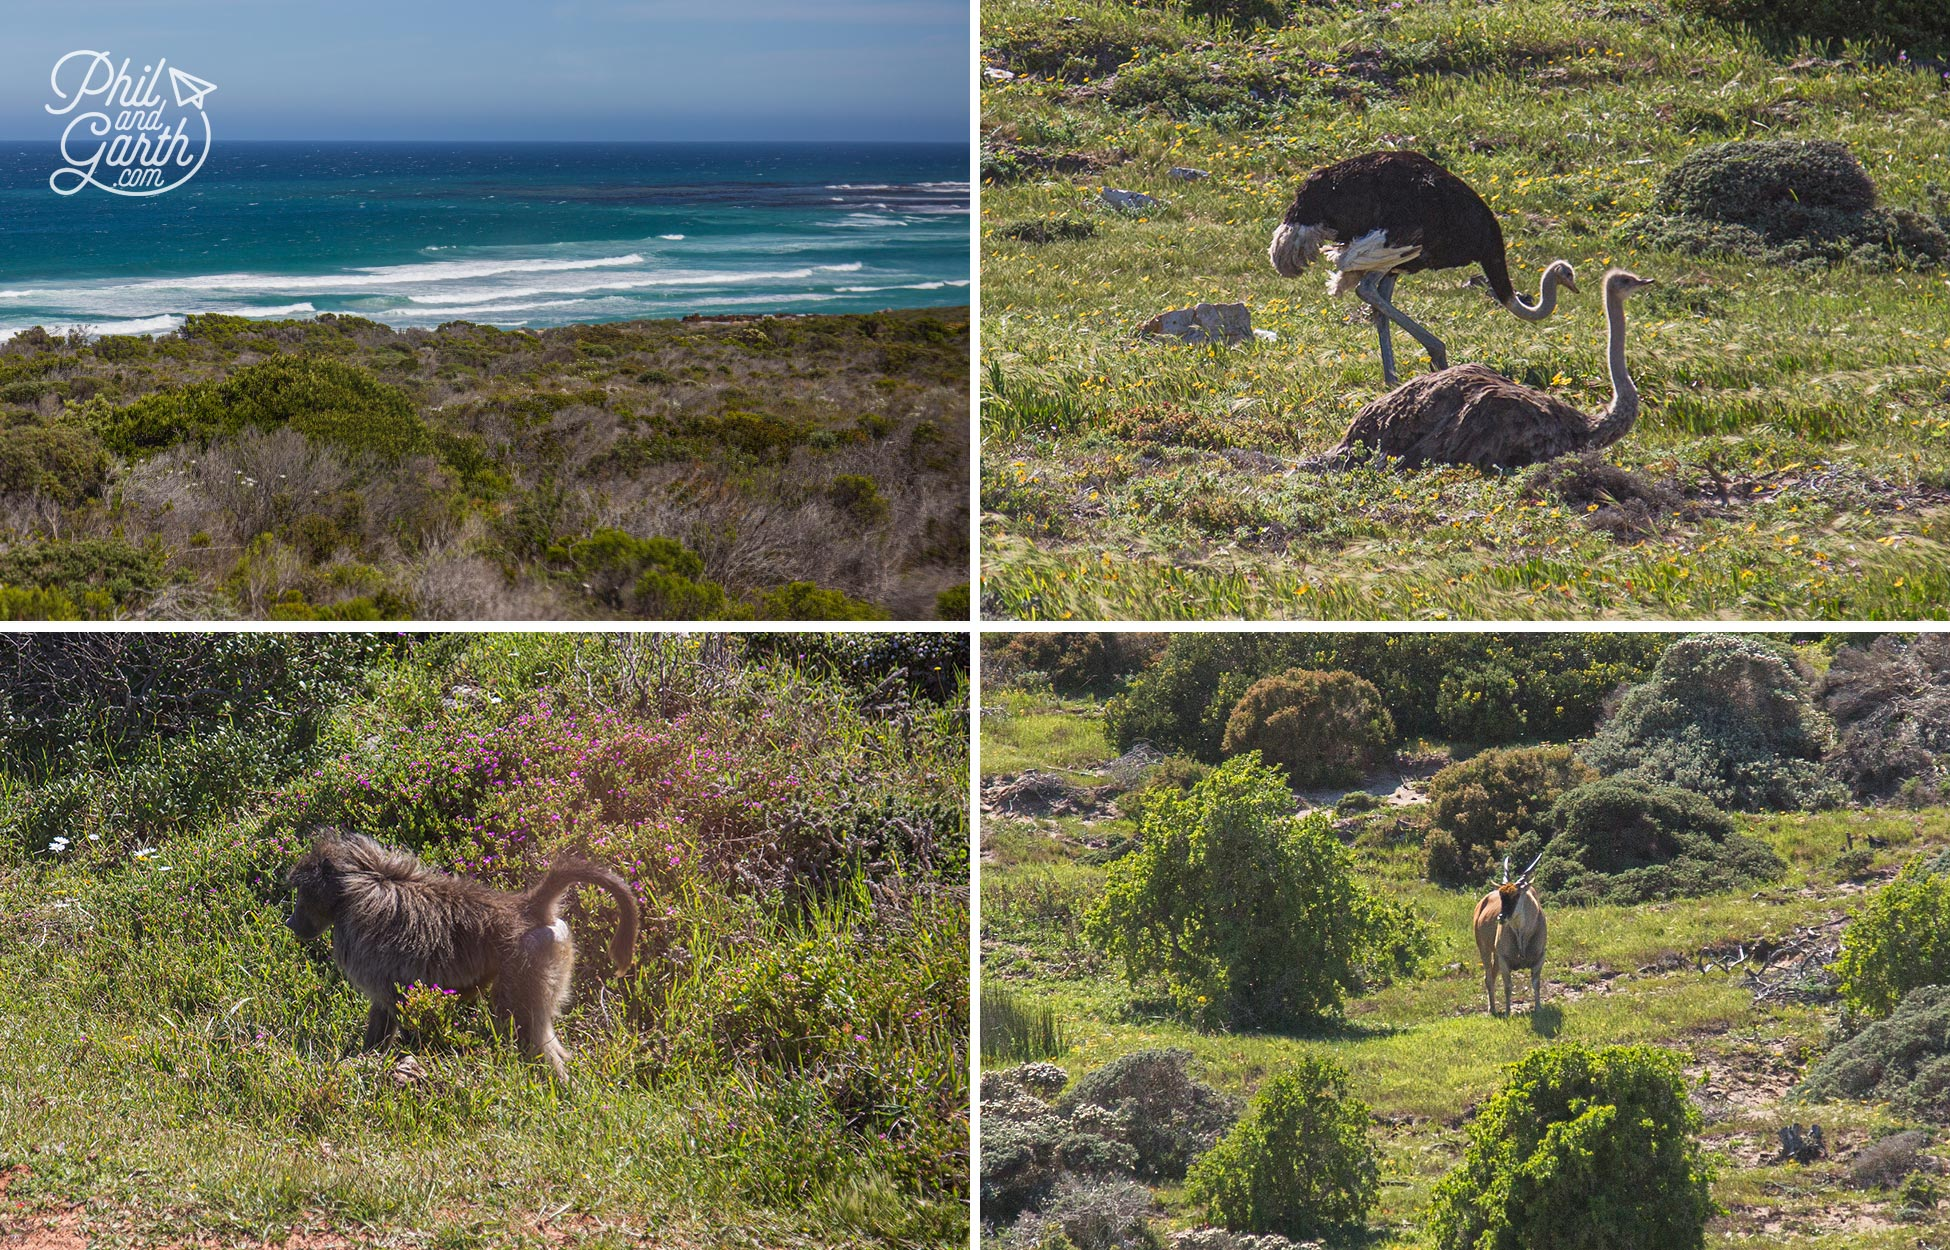 Lots of wildlife at the Cape Point Nature Reserve